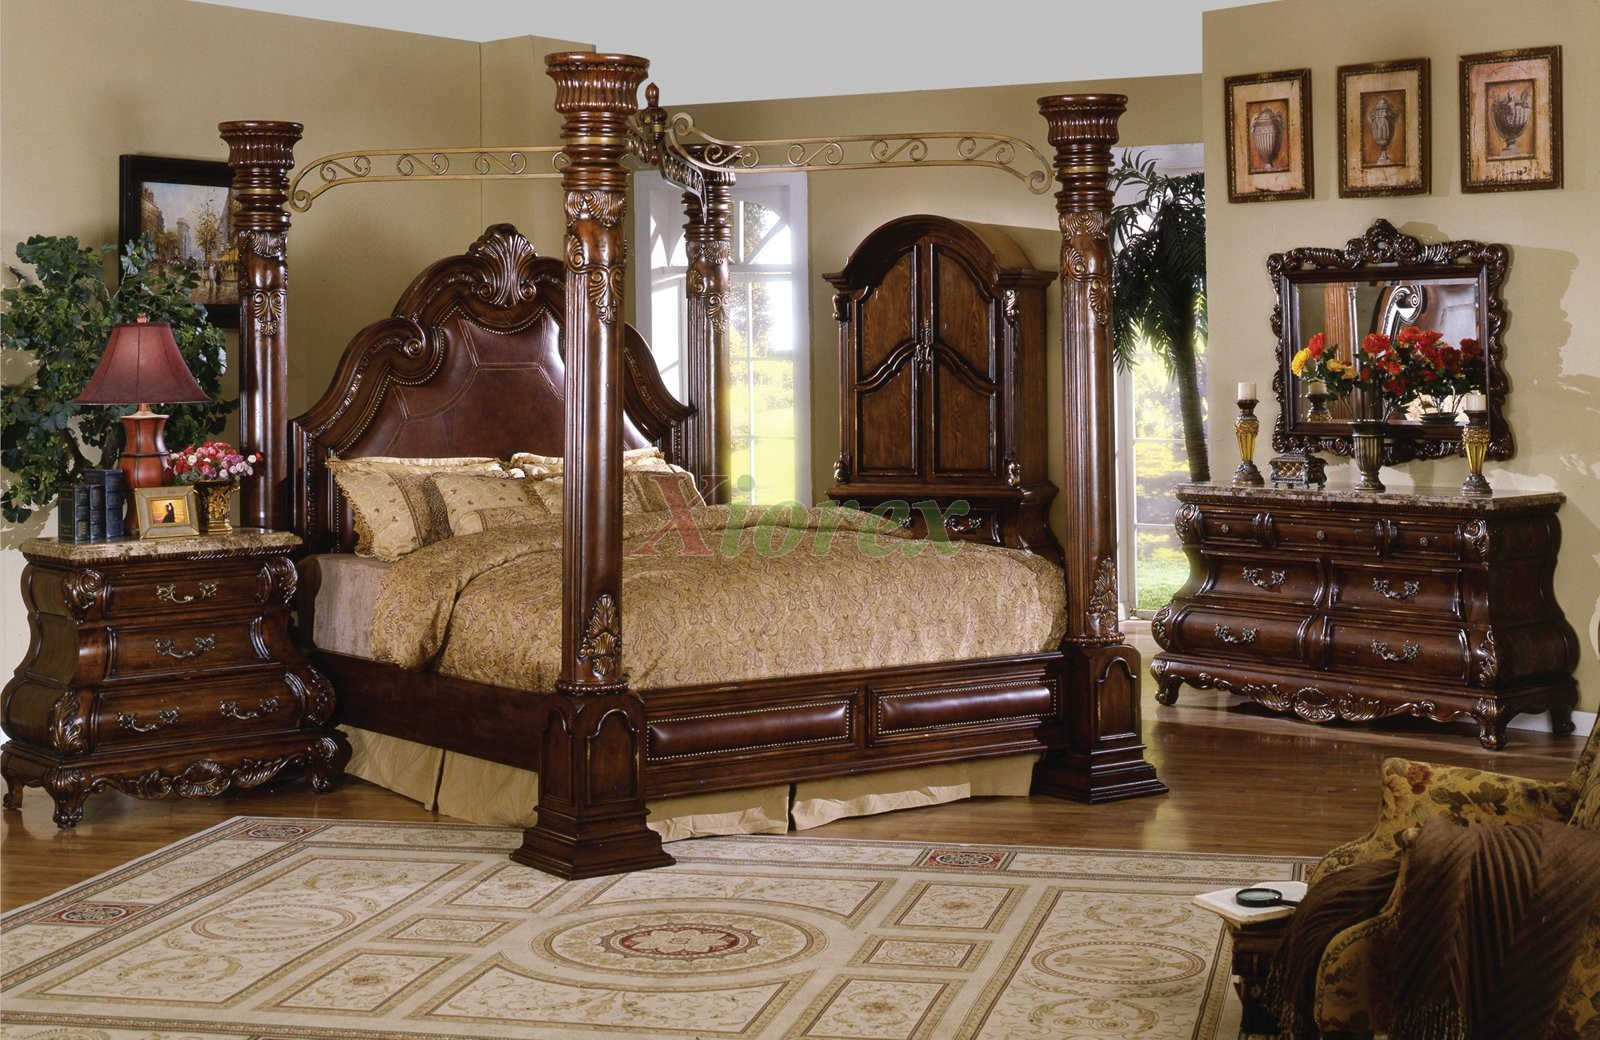 Remarkable King Size Canopy Bed Sets 1600 x 1040 · 460 kB · jpeg